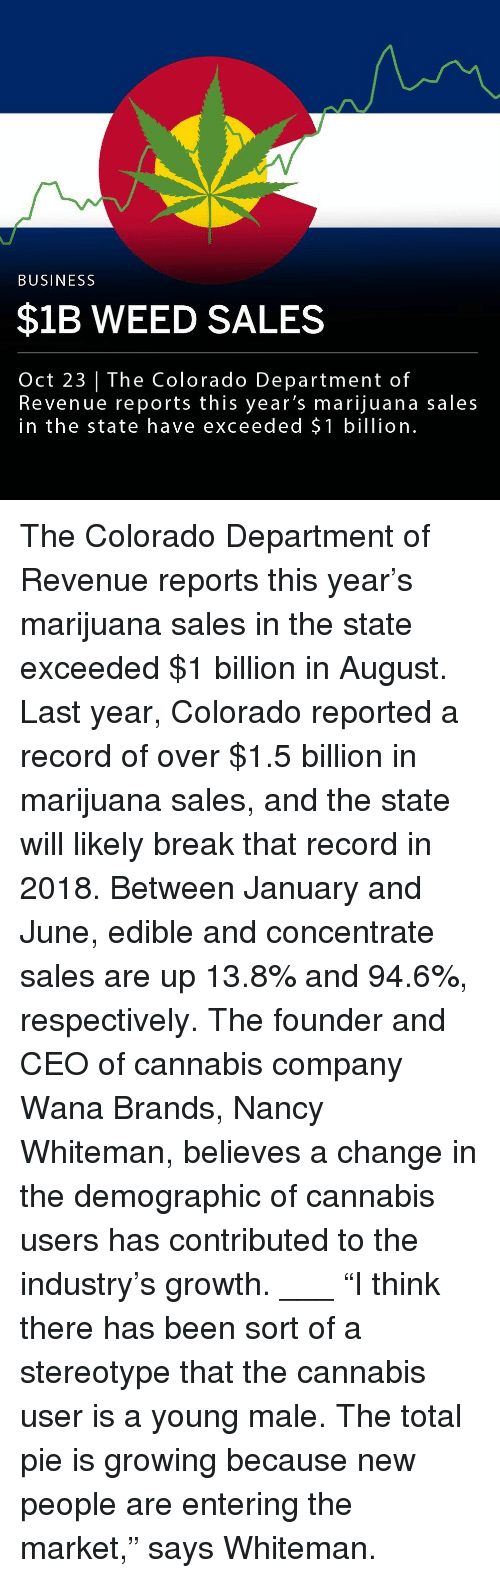 "respectively: BUSINESS  $1B WEED SALES  Oct 23 | The Colorado Department of  Revenue reports this year's marijuana sales  in the state have exceeded $1 billion The Colorado Department of Revenue reports this year's marijuana sales in the state exceeded $1 billion in August. Last year, Colorado reported a record of over $1.5 billion in marijuana sales, and the state will likely break that record in 2018. Between January and June, edible and concentrate sales are up 13.8% and 94.6%, respectively. The founder and CEO of cannabis company Wana Brands, Nancy Whiteman, believes a change in the demographic of cannabis users has contributed to the industry's growth. ___ ""I think there has been sort of a stereotype that the cannabis user is a young male. The total pie is growing because new people are entering the market,"" says Whiteman."